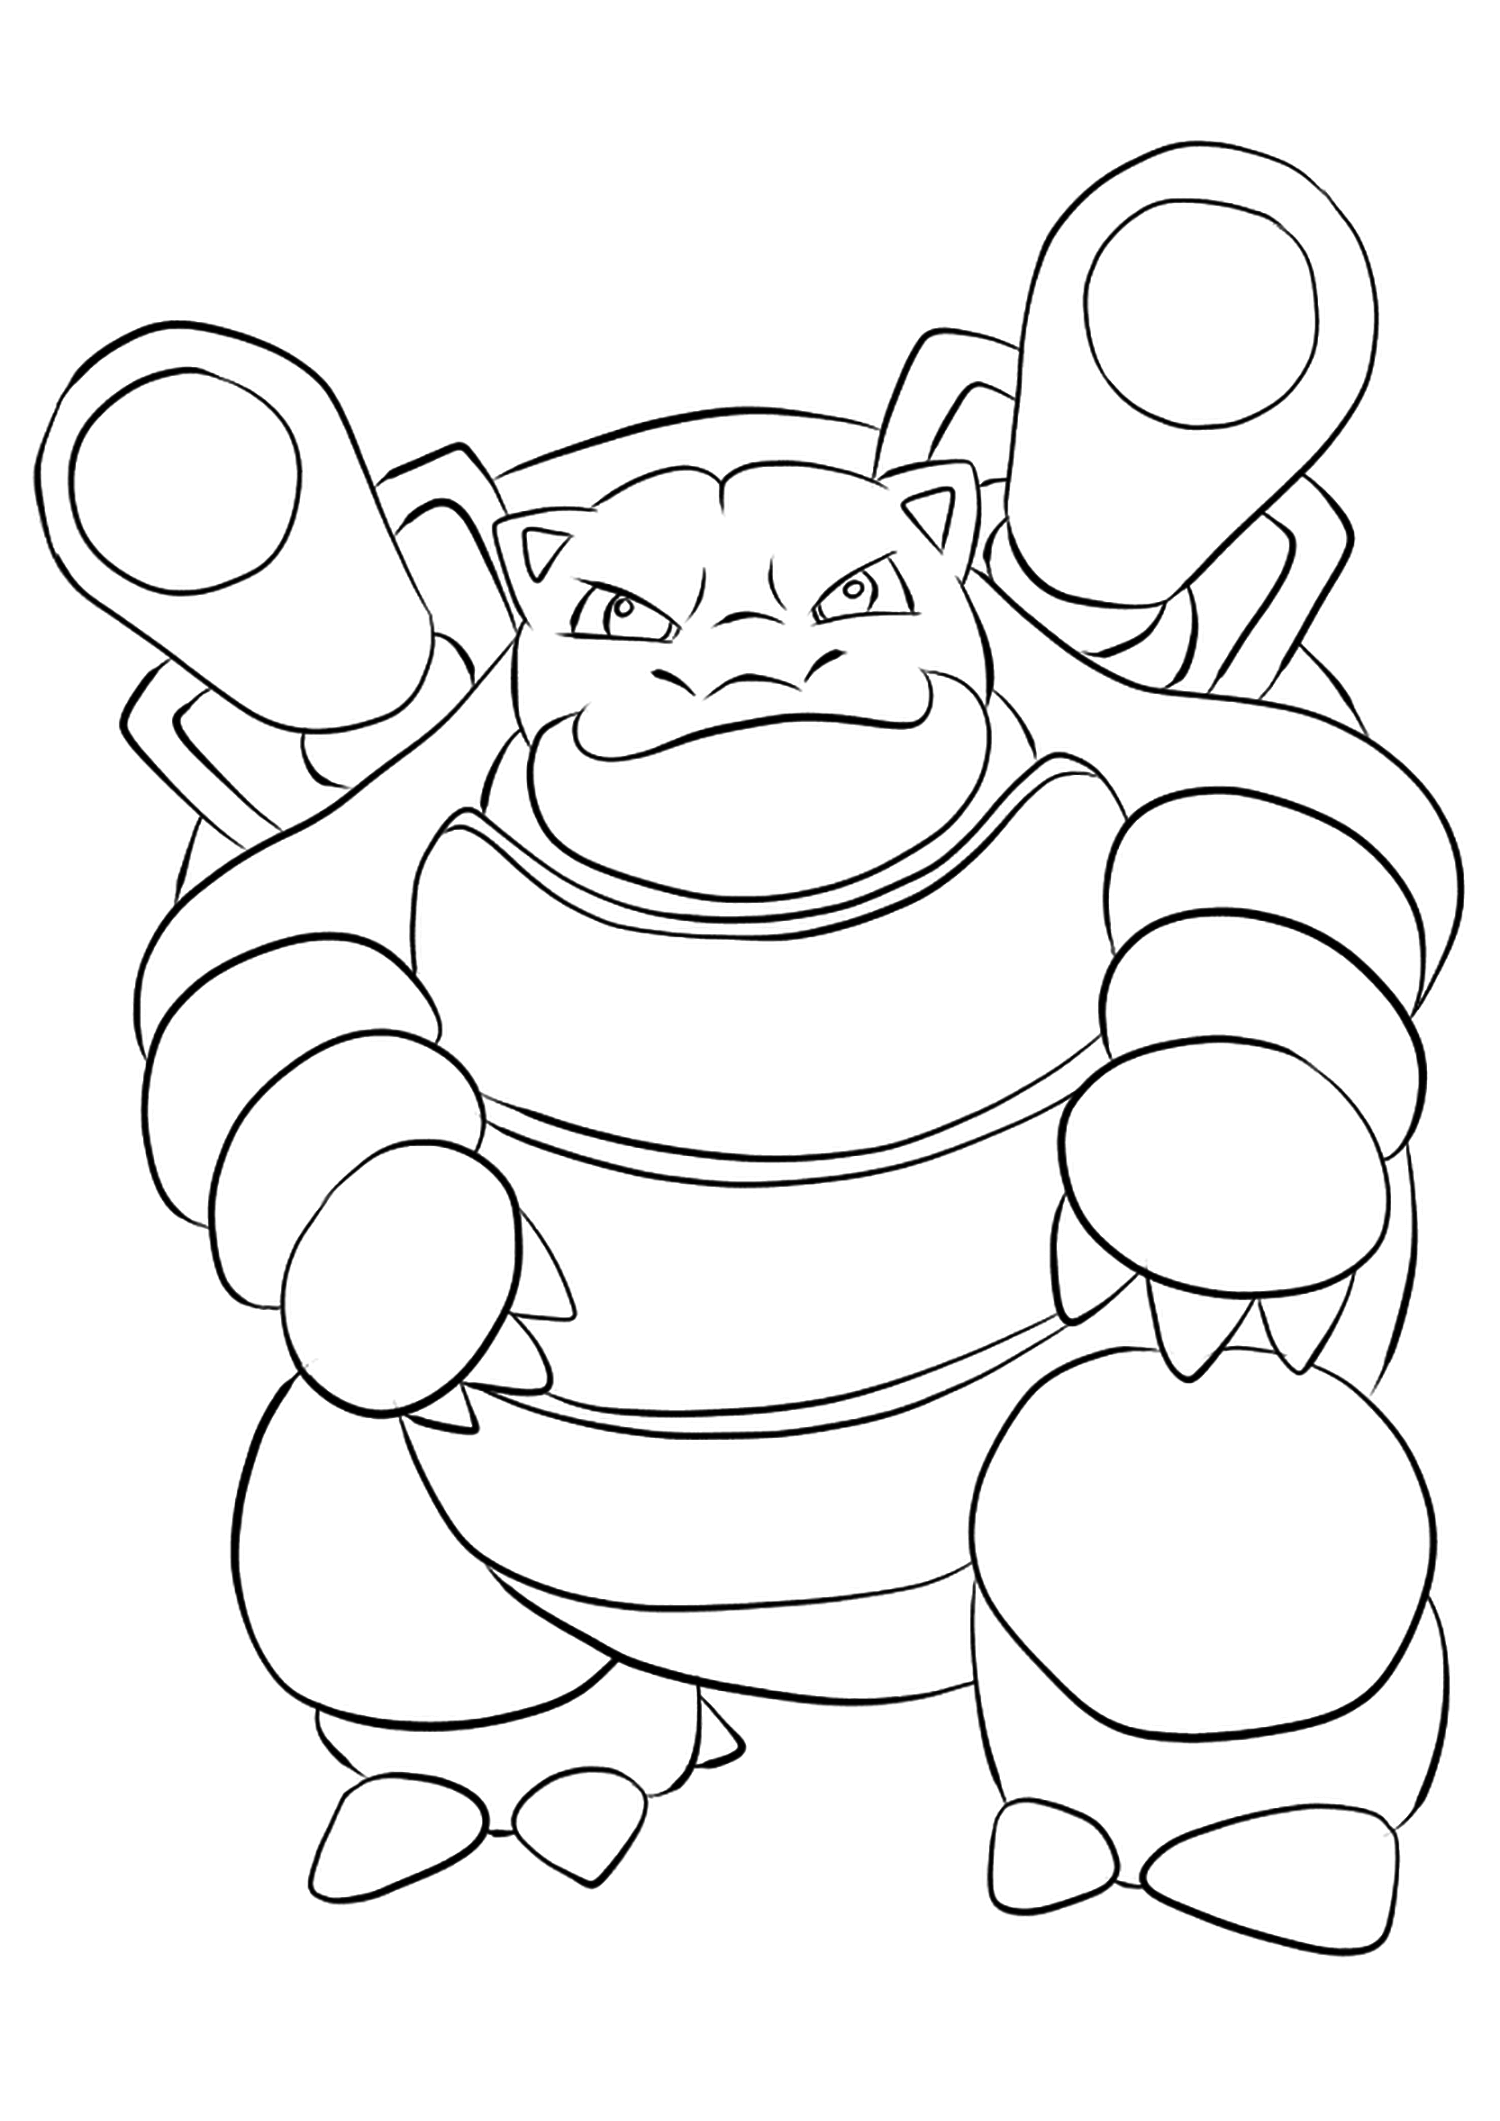 Blastoise (No.09)Blastoise Coloring page, Generation I Pokemon of type WaterOriginal image credit: Pokemon linearts by Lilly Gerbil'font-size:smaller;color:gray'>Permission: All rights reserved © Pokemon company and Ken Sugimori.